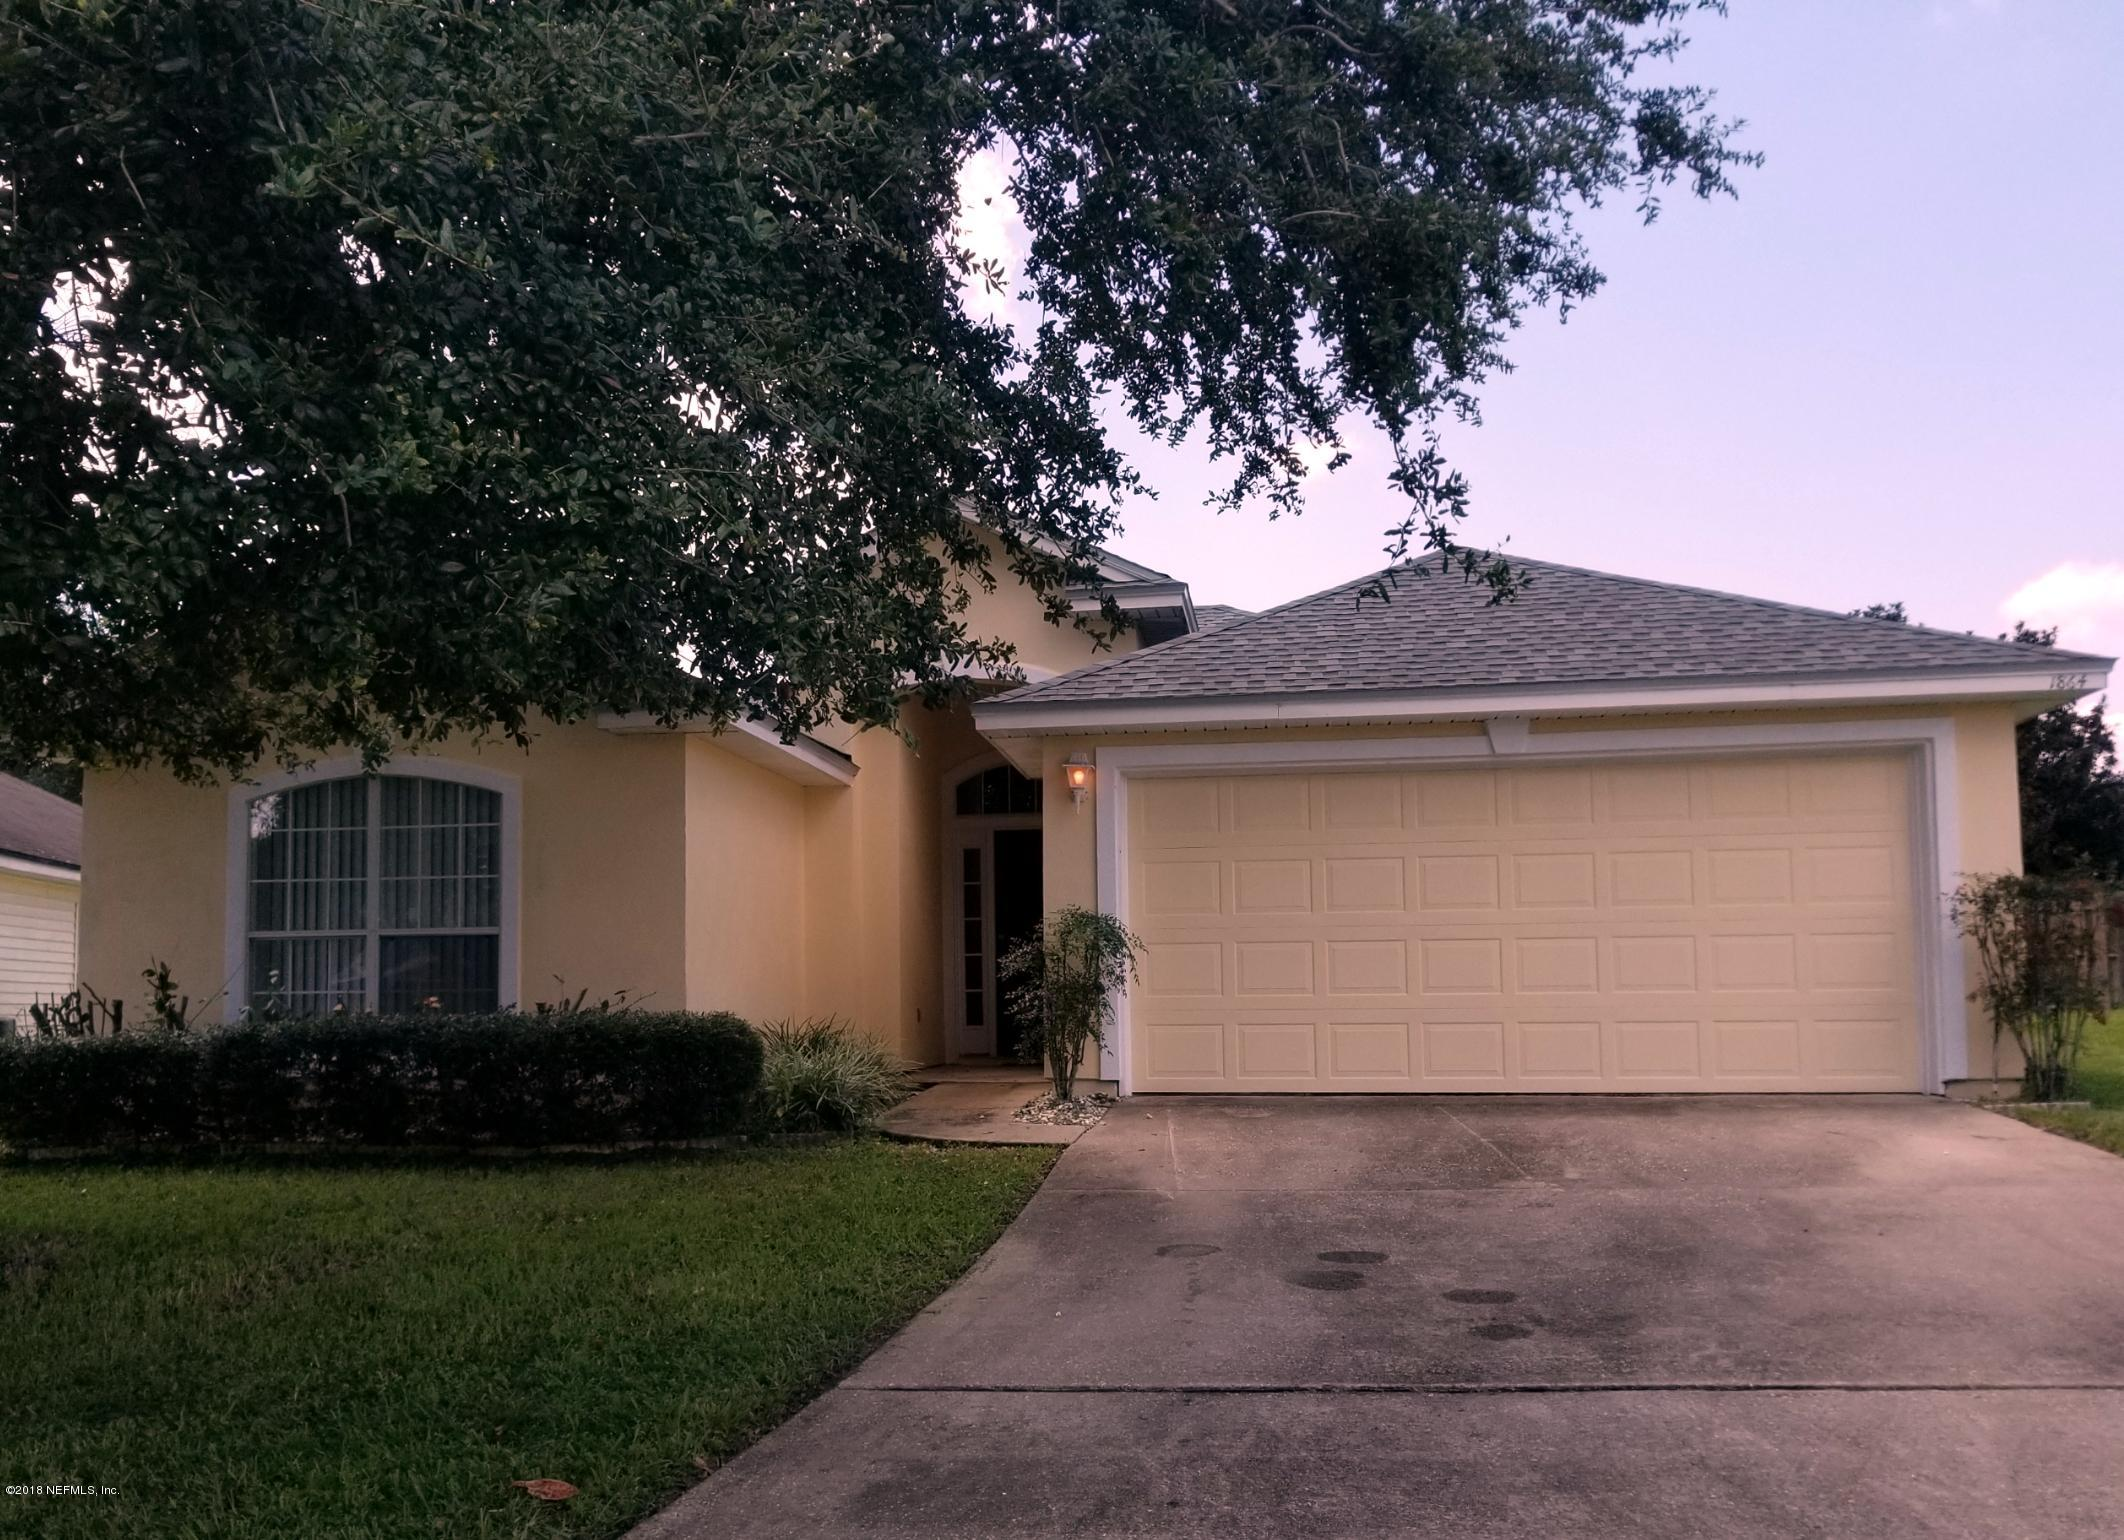 1864 CREEKVIEW, GREEN COVE SPRINGS, FLORIDA 32043, 3 Bedrooms Bedrooms, ,2 BathroomsBathrooms,Residential - single family,For sale,CREEKVIEW,958425